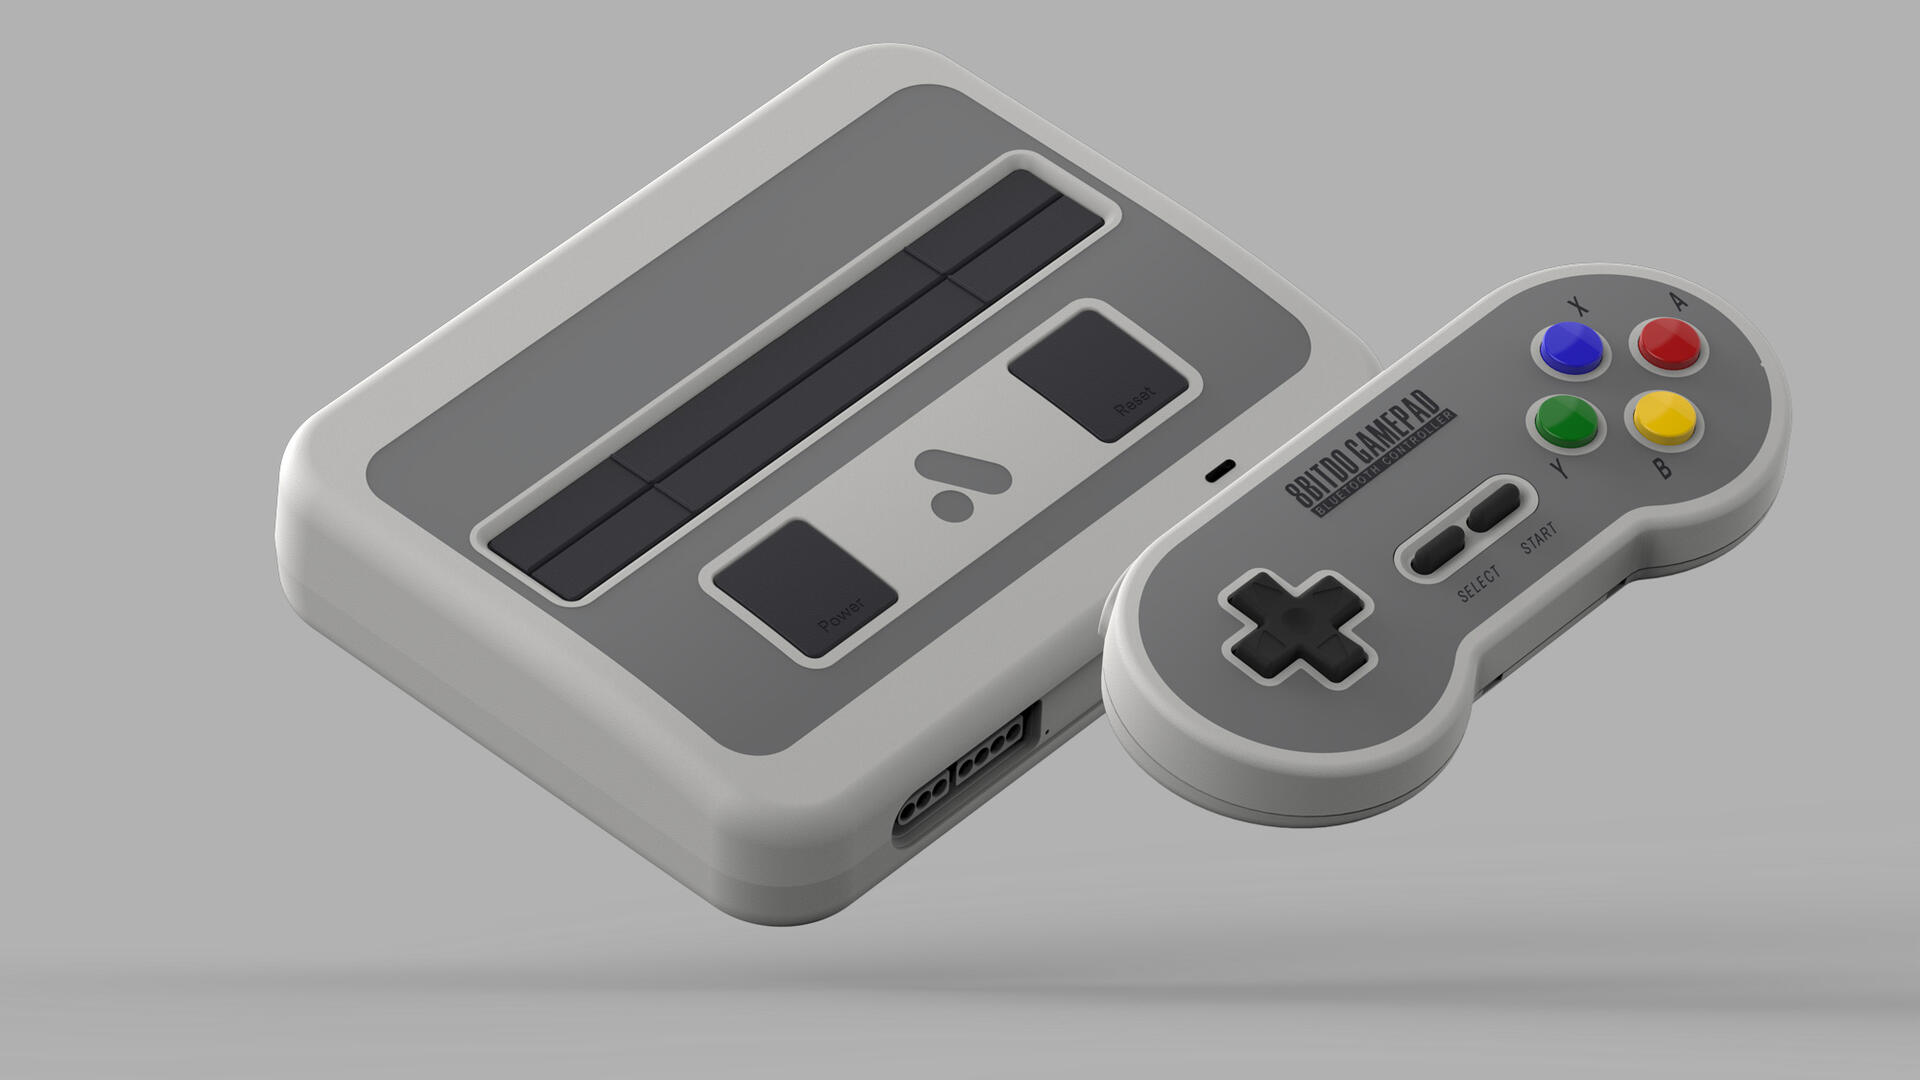 Analogue's Modern SNES Console Will Also Come With an Exclusive Game